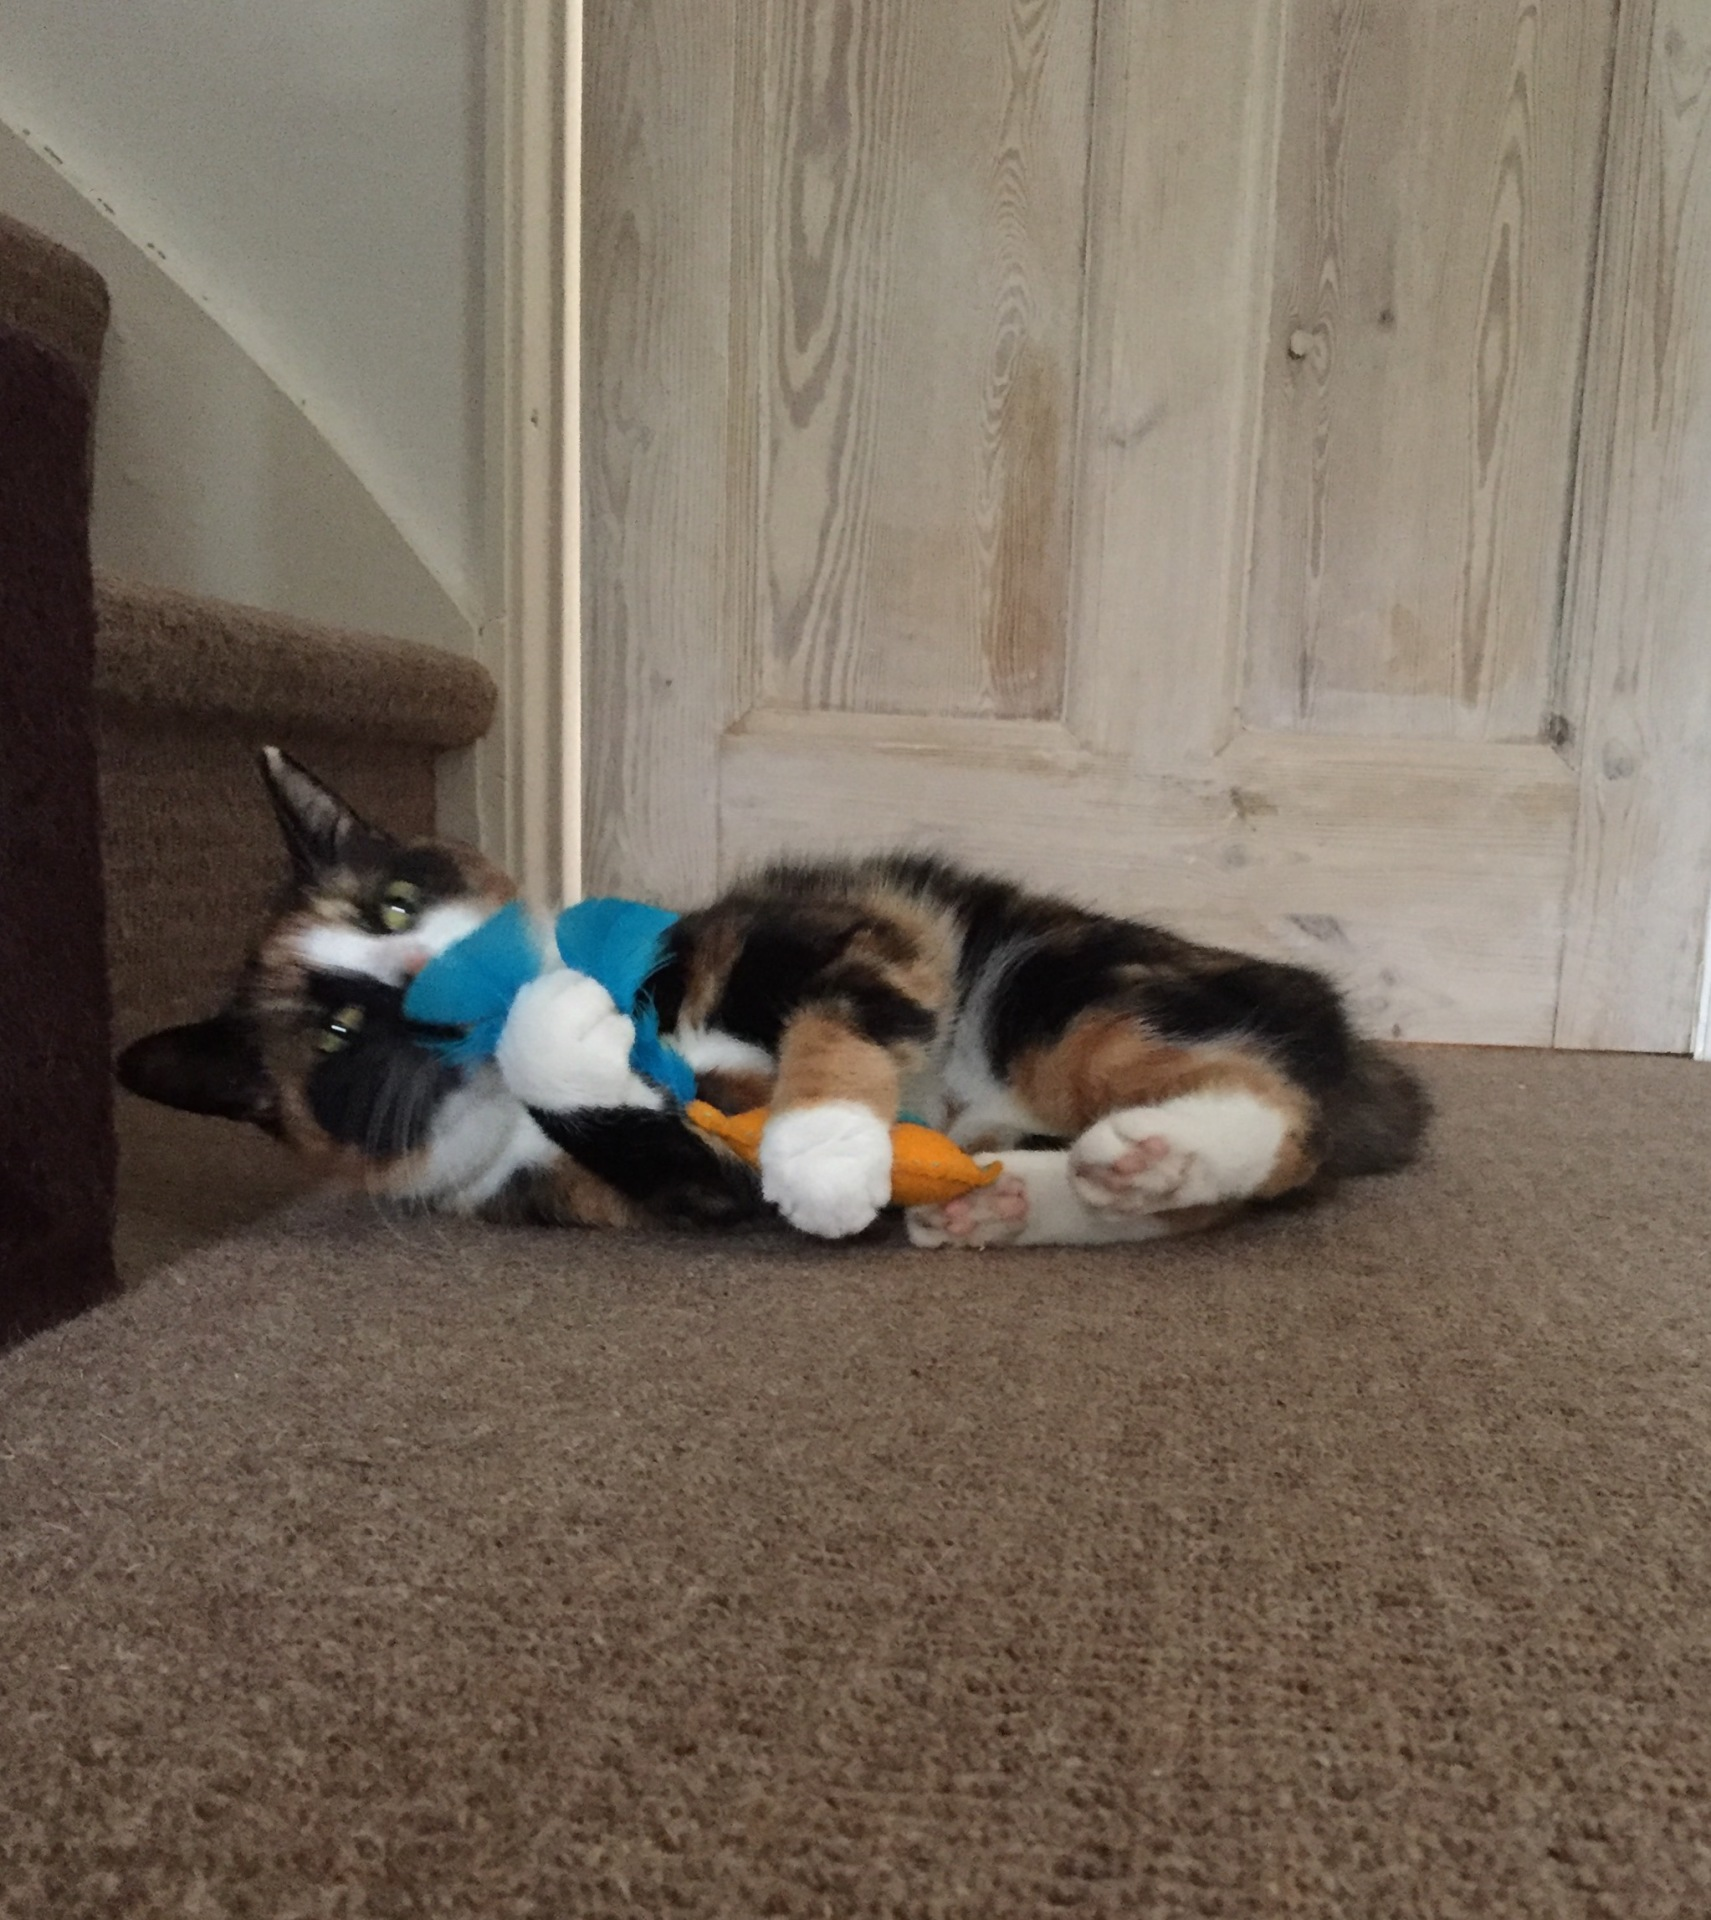 My cat Pixie with her hand-made cat toy